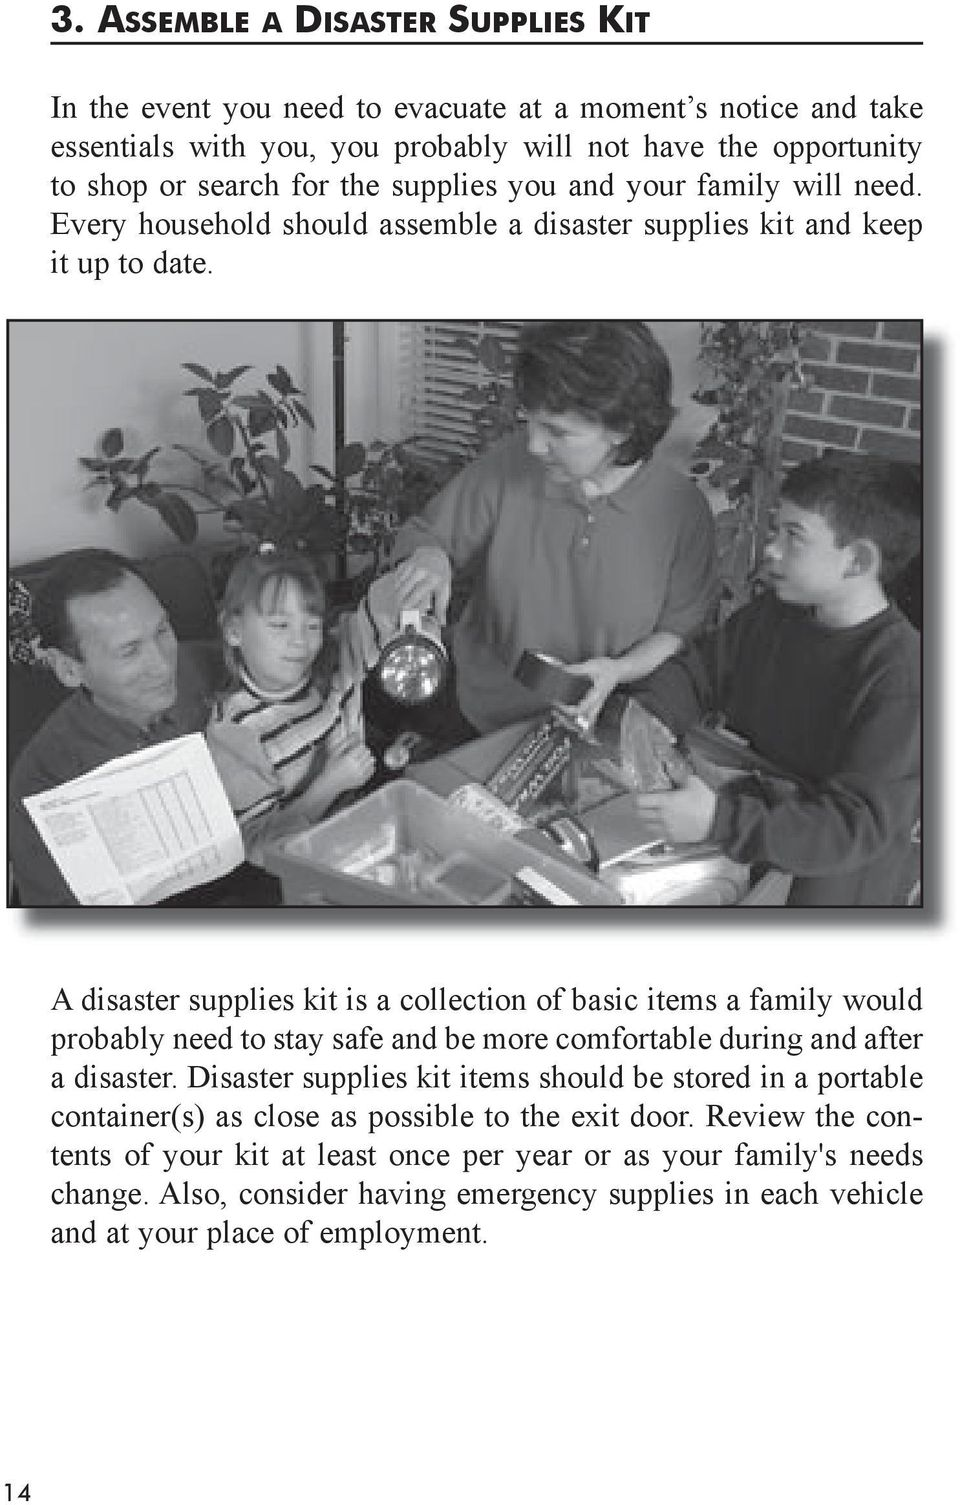 A disaster supplies kit is a collection of basic items a family would probably need to stay safe and be more comfortable during and after a disaster.